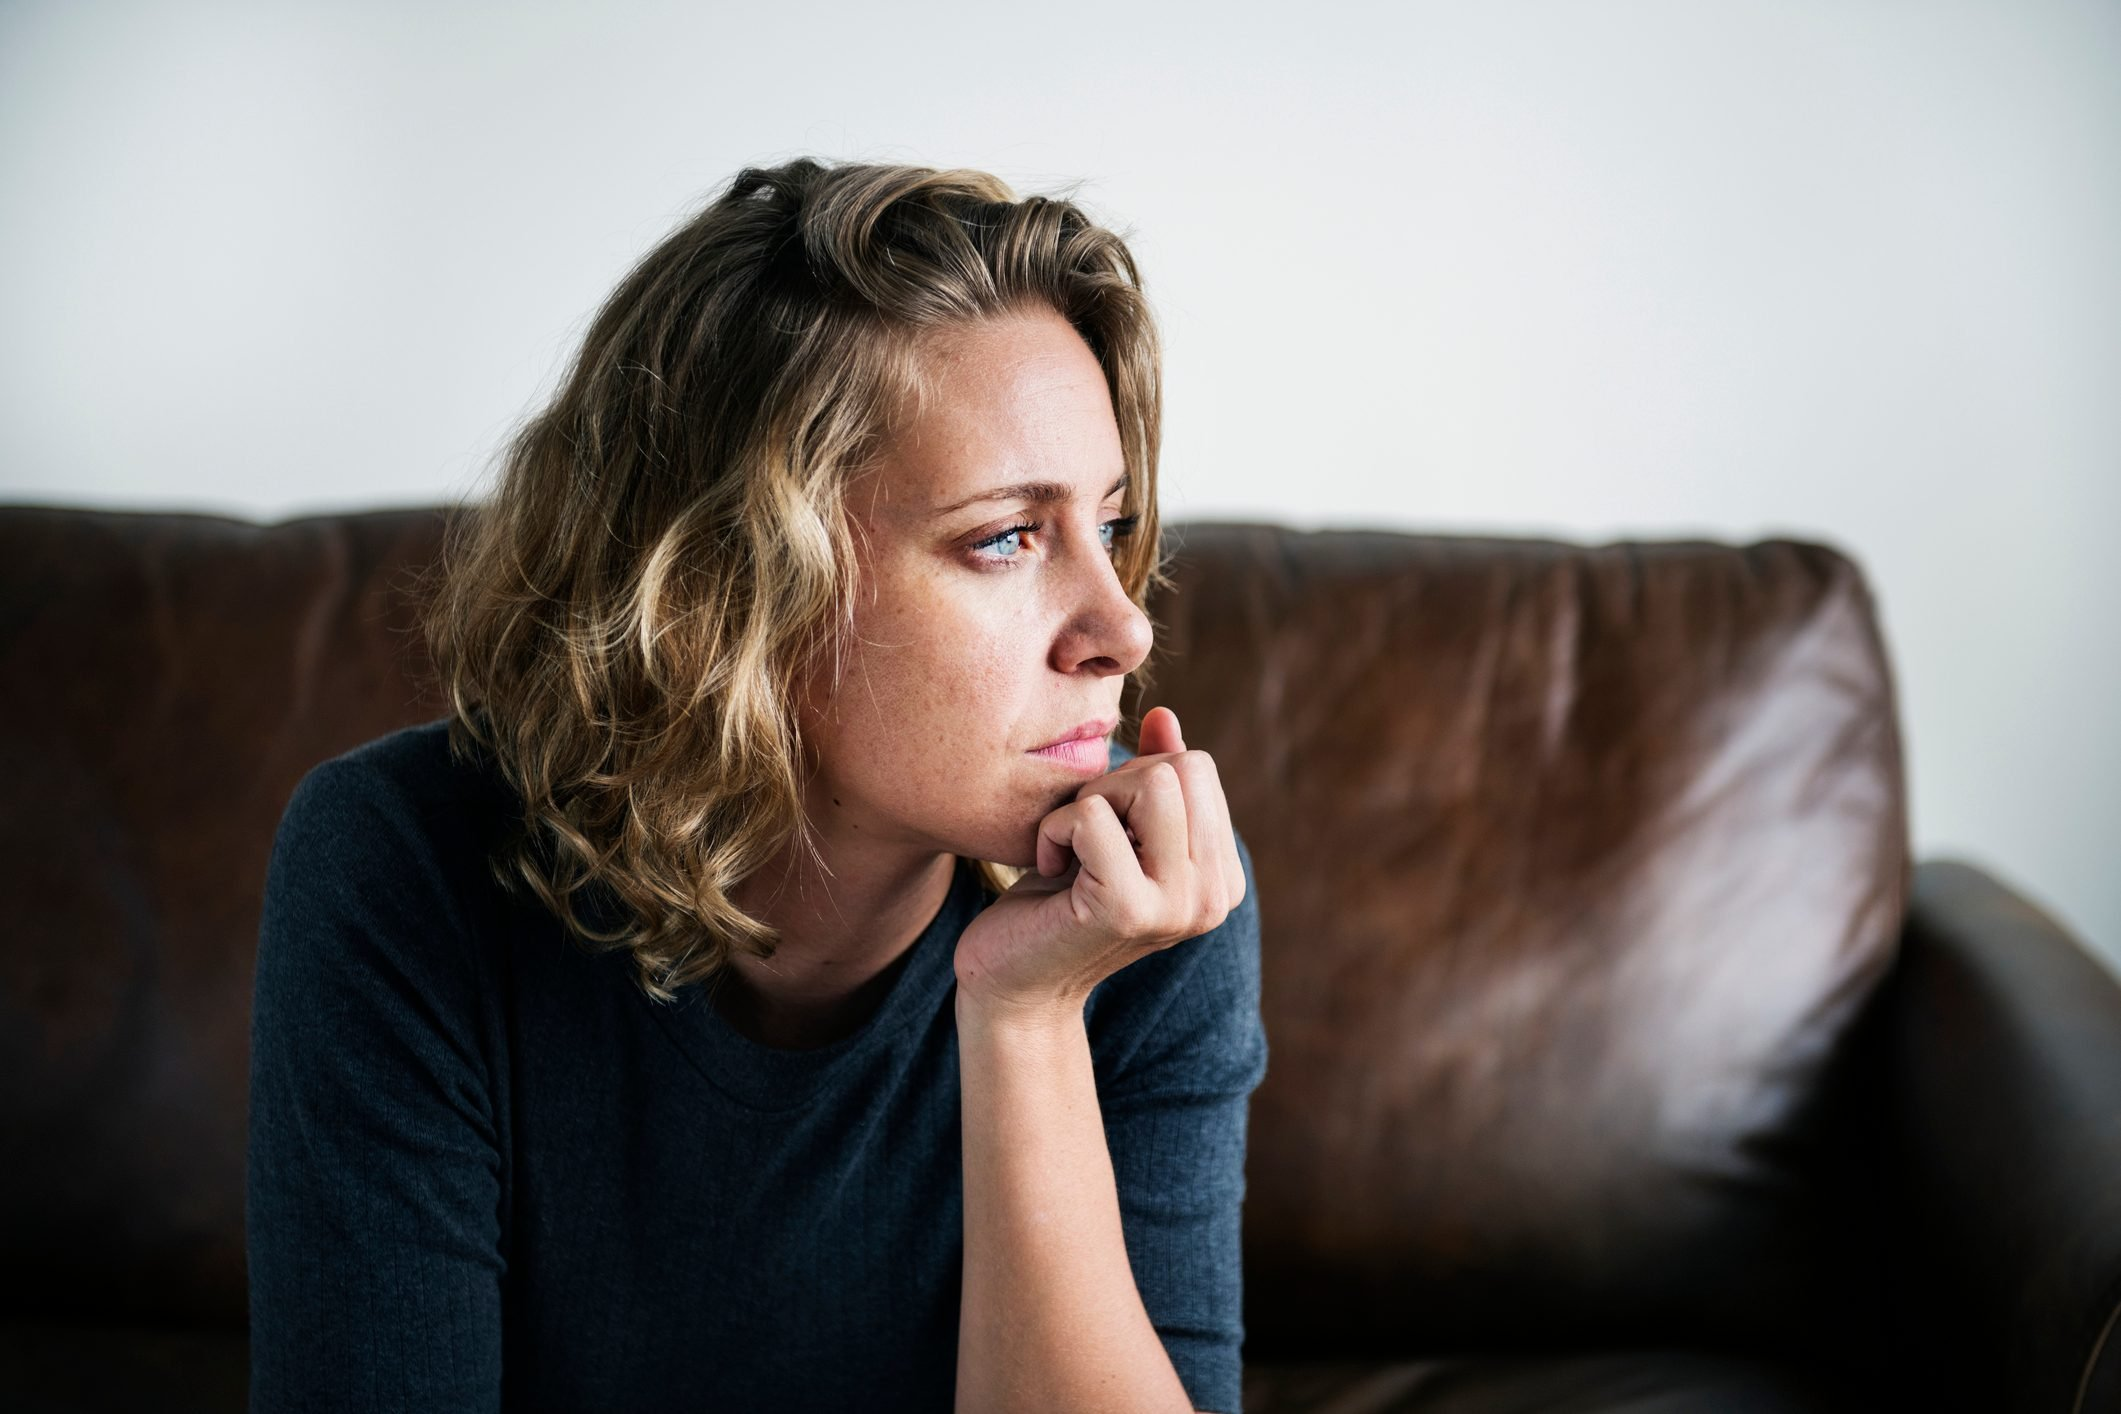 woman sitting on sofa sad